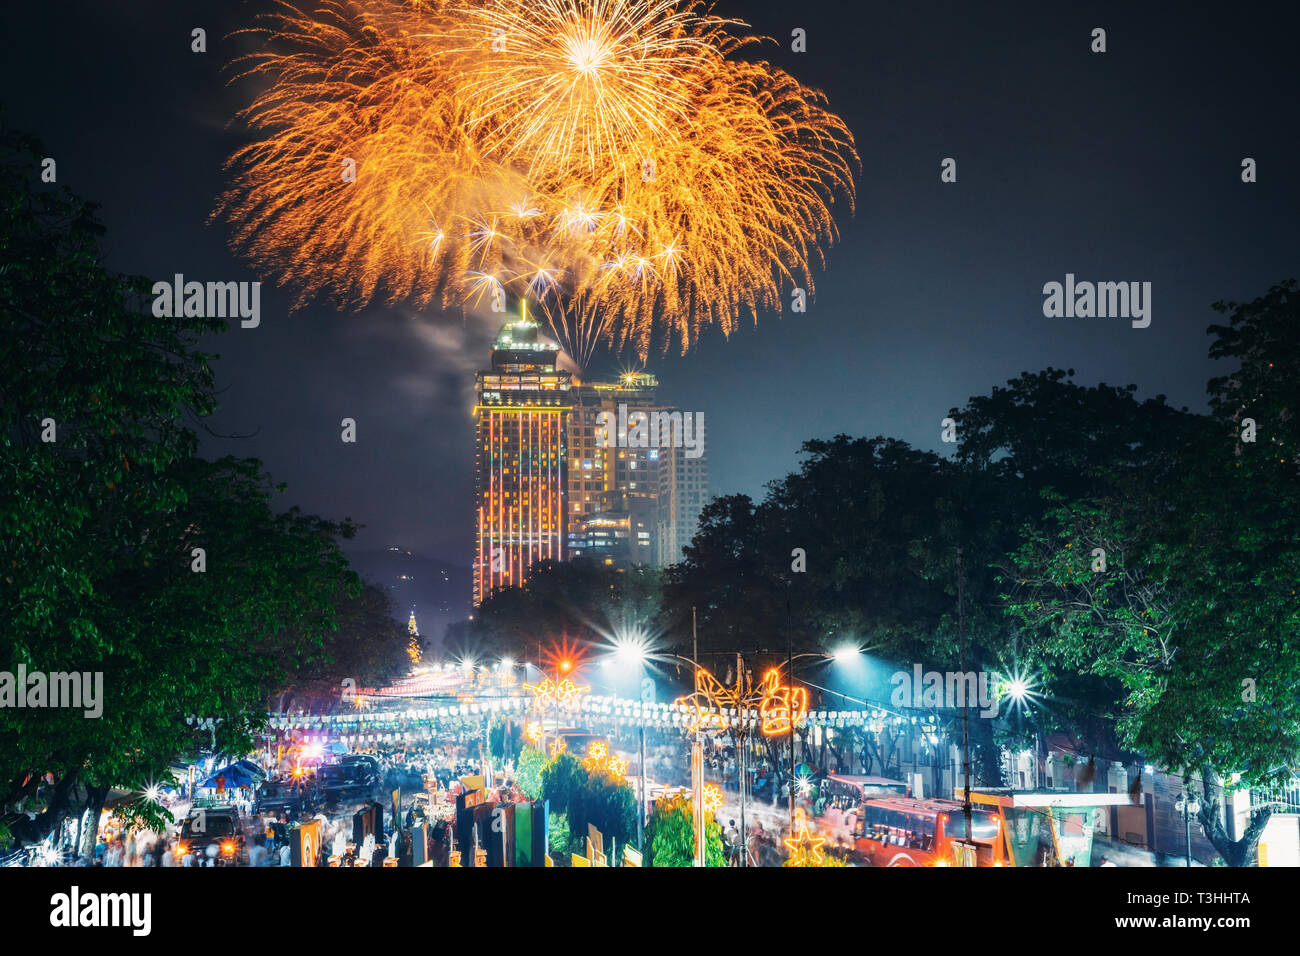 Fireworks on Sinulog Festival in Cebu City, Philippines - Stock Image